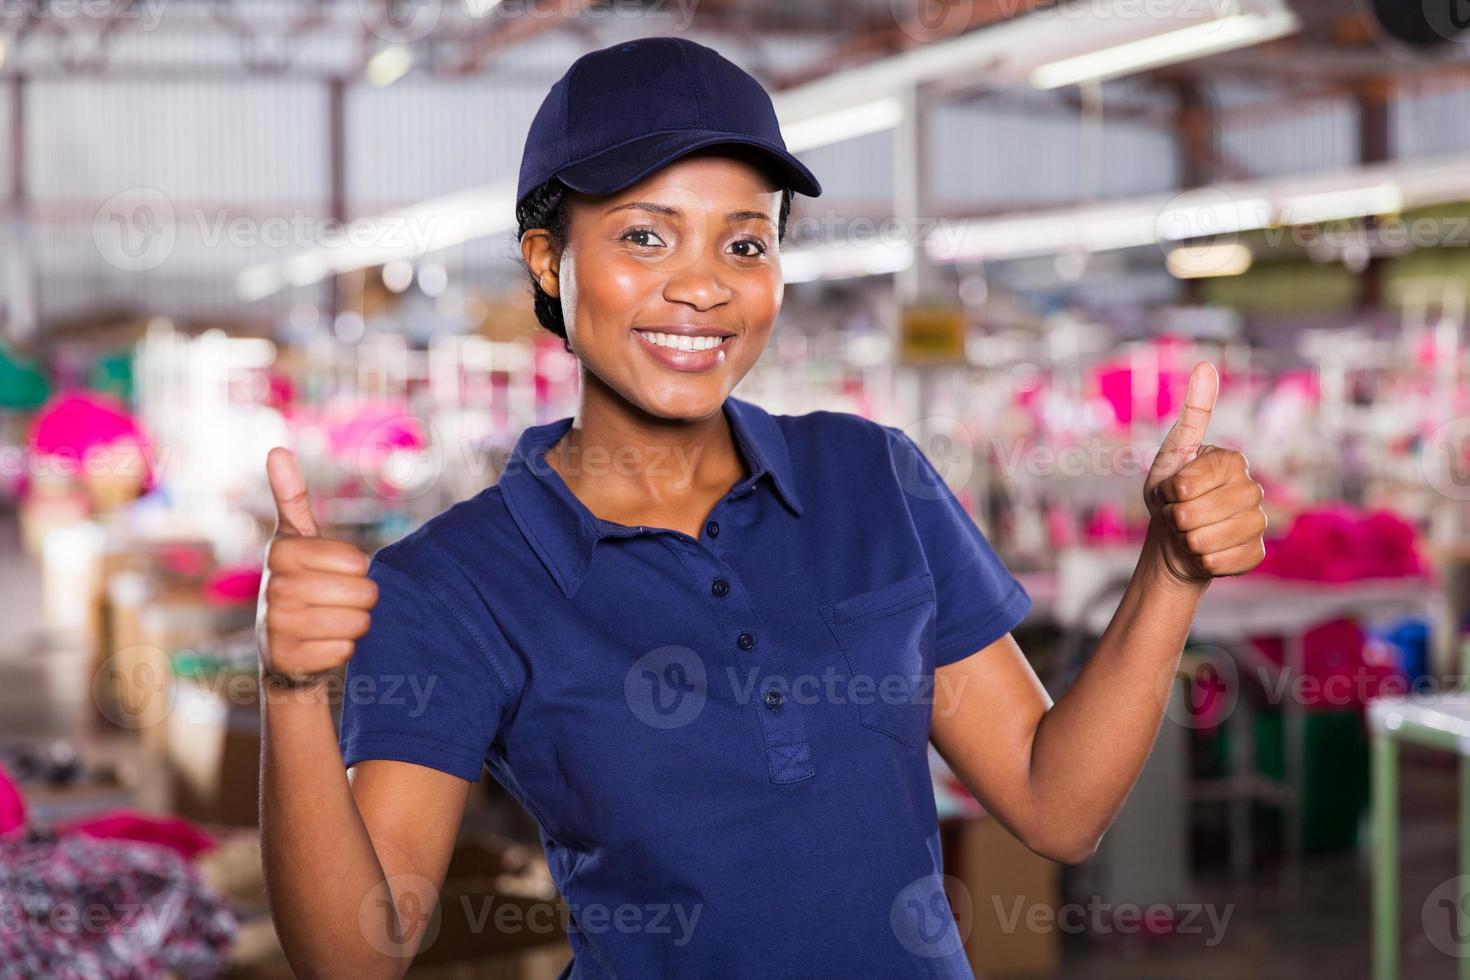 female textile worker with thumbs up photo